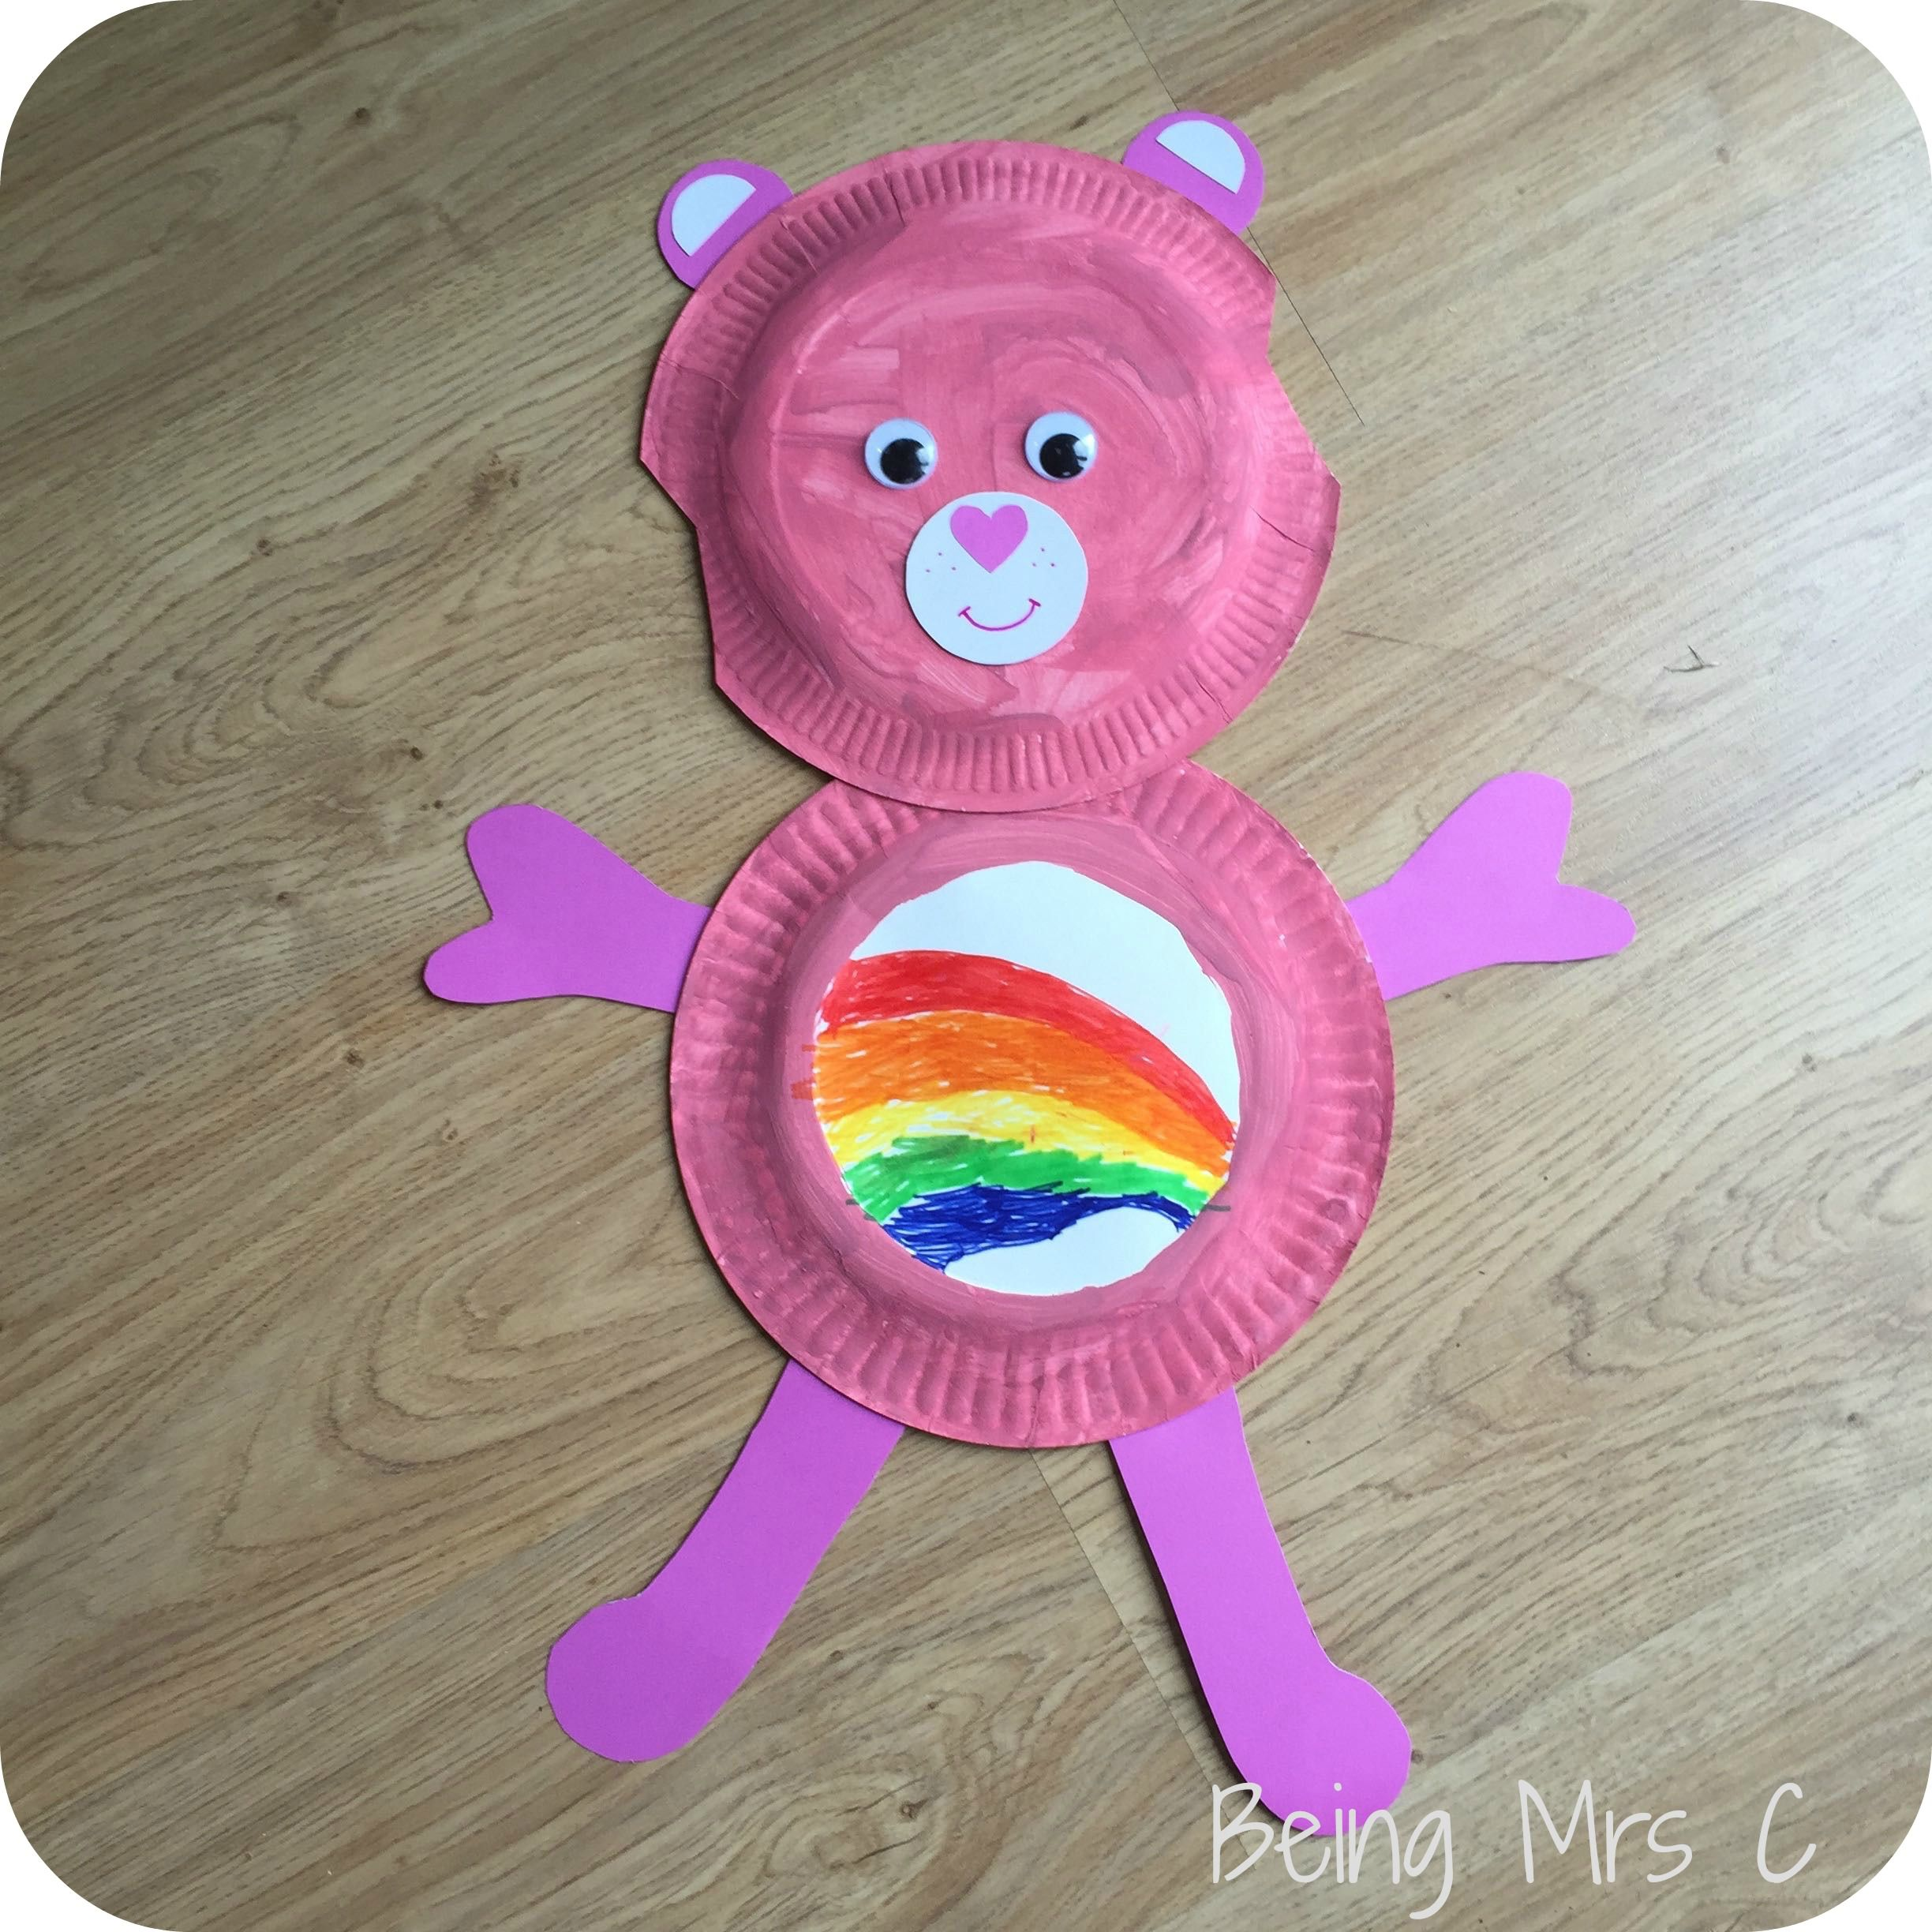 Paper-Plate-Care-Bear4.jpg (2448×2448) & Paper-Plate-Care-Bear4.jpg (2448×2448) | Never Grow up!! | Pinterest ...